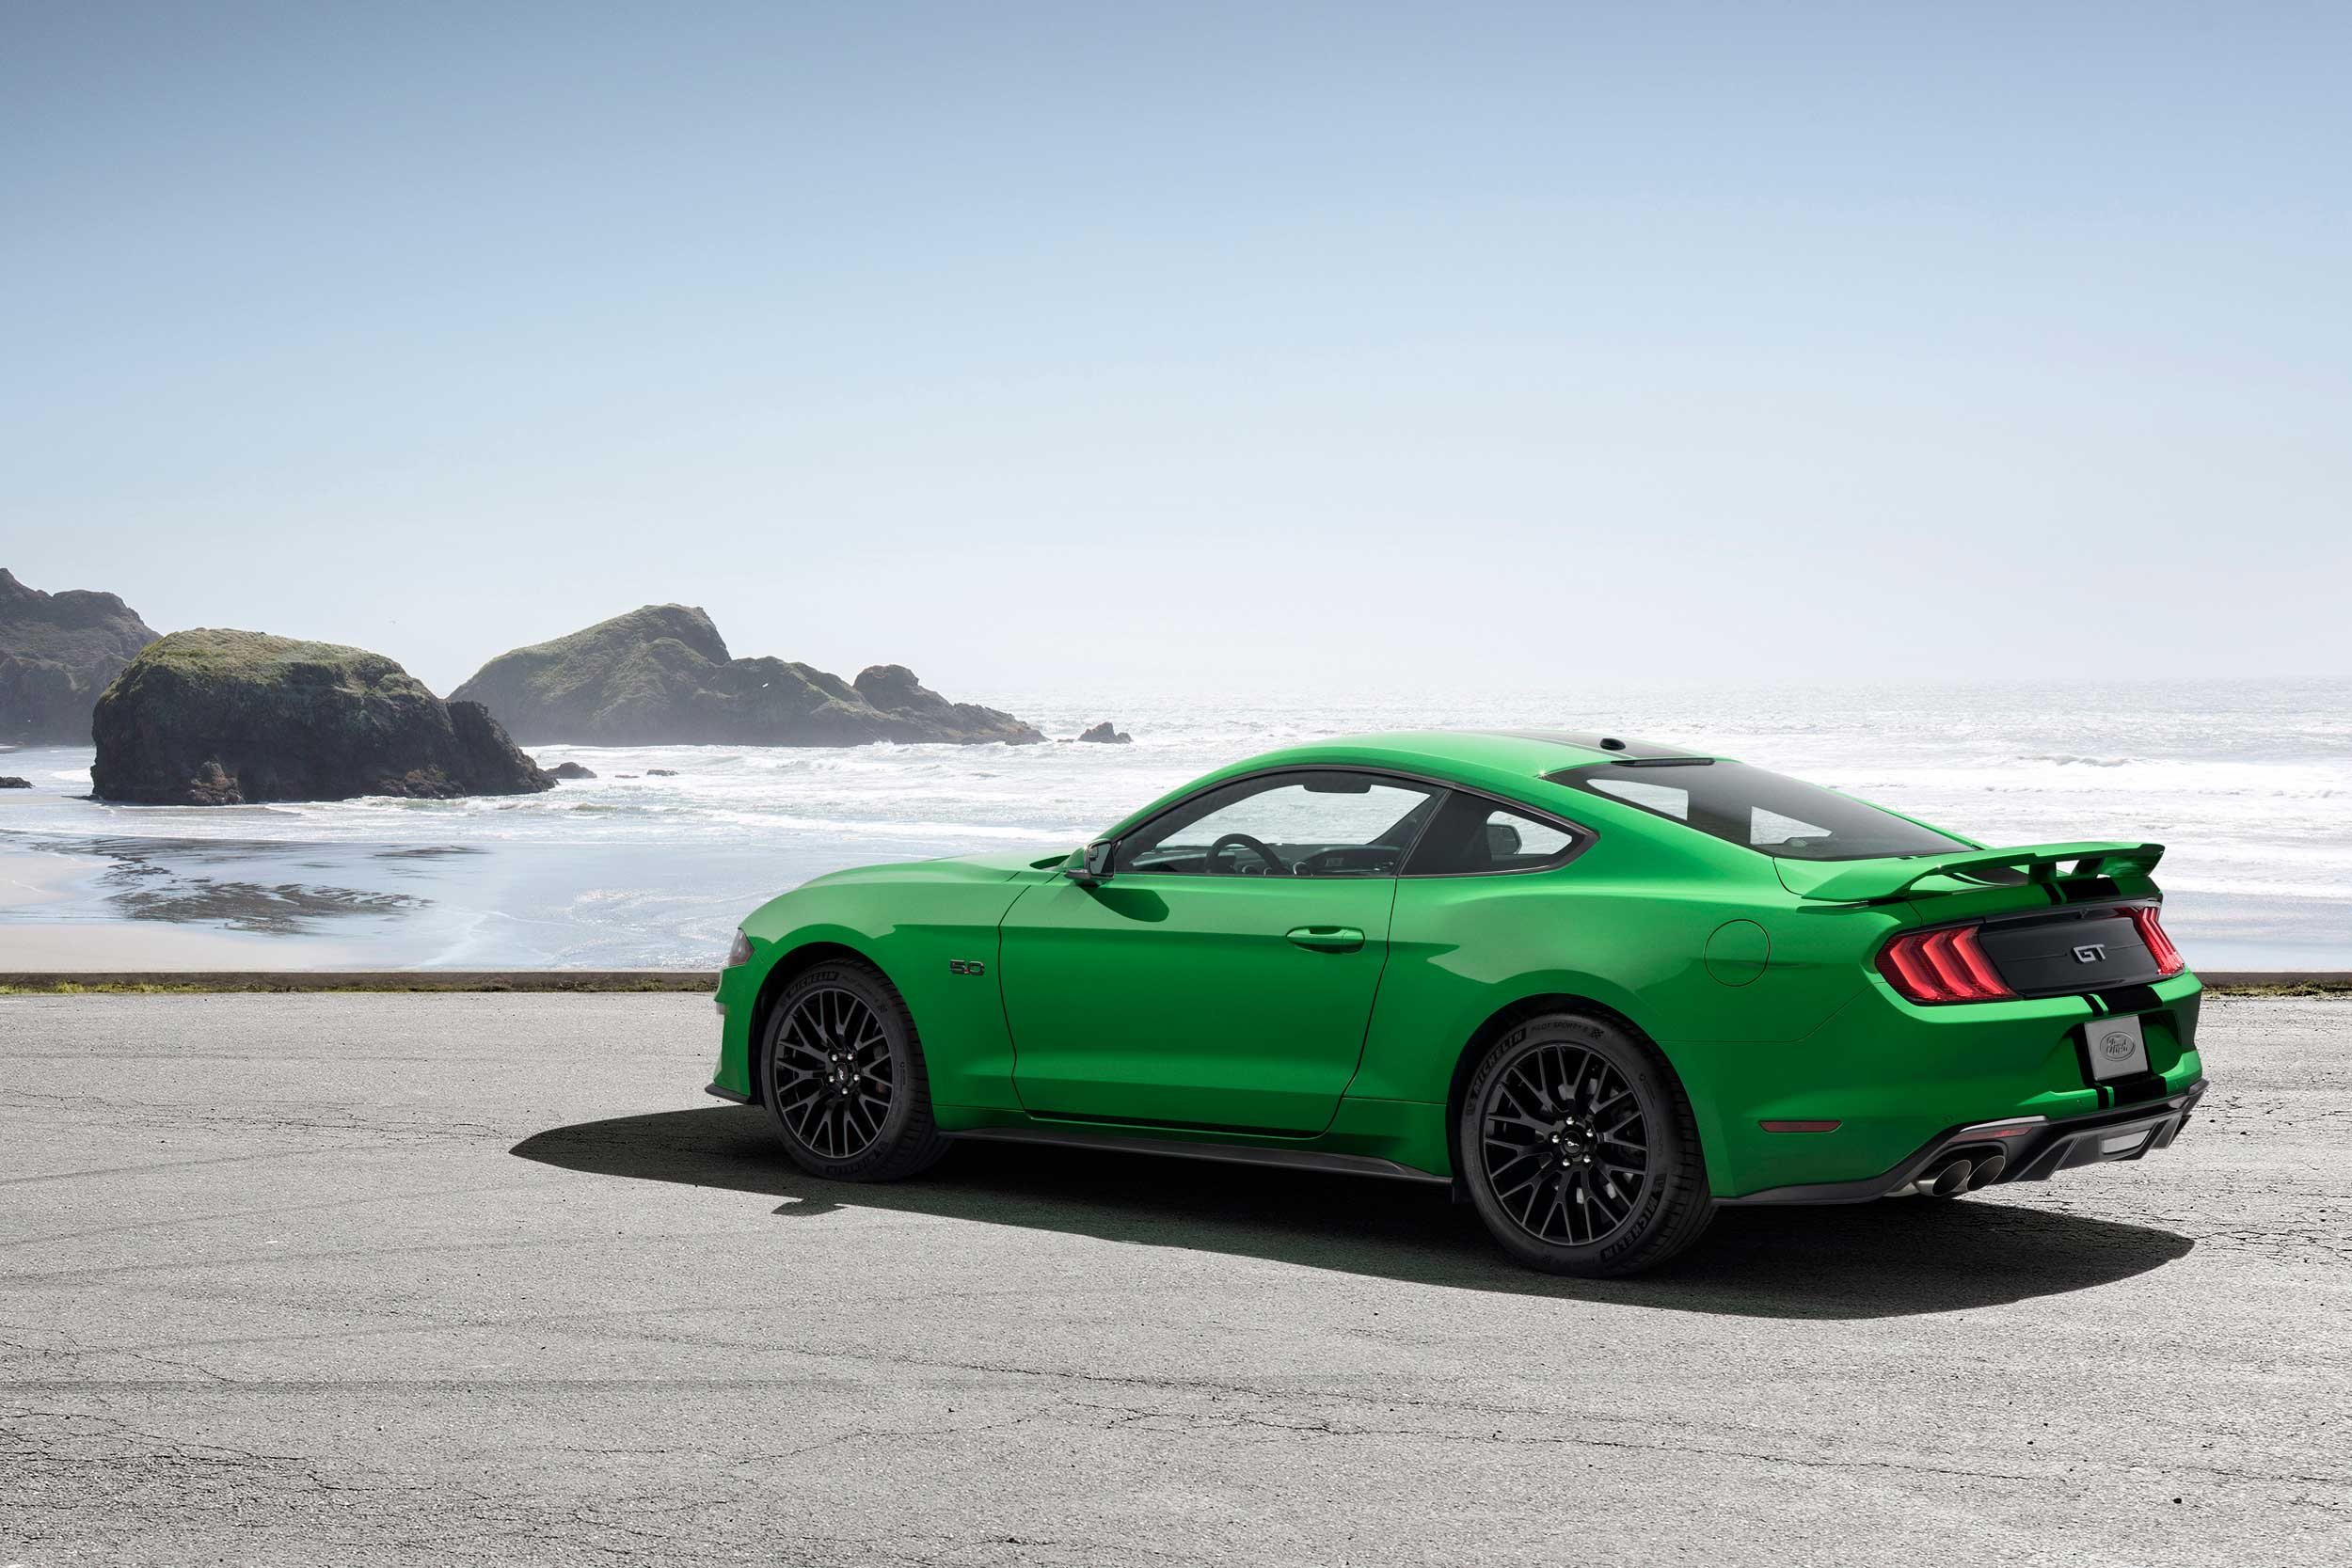 Mustang and Camaro: What's new for 2019? | Motoring Research